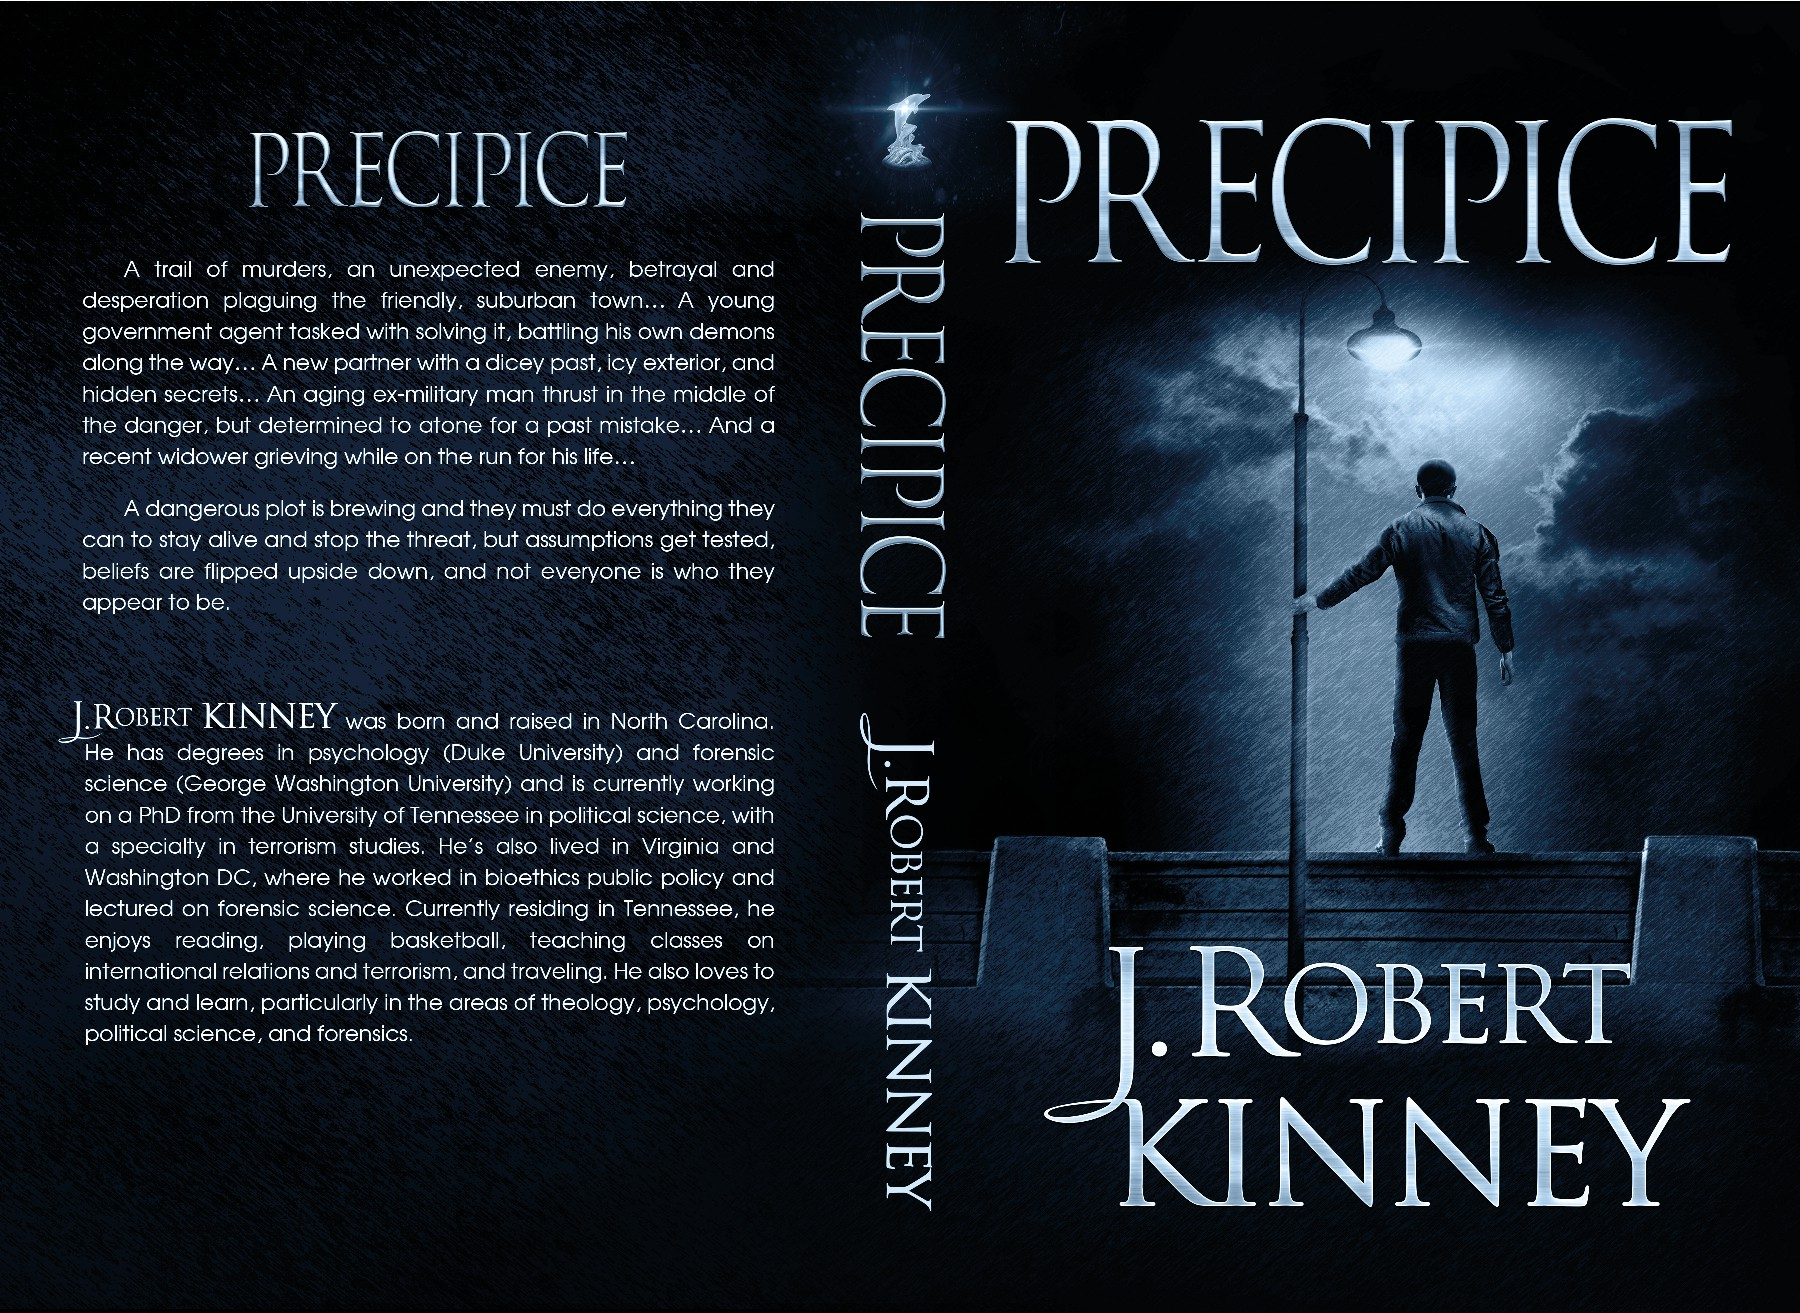 Precipice - Book Cover for a Mystery/Suspense novel